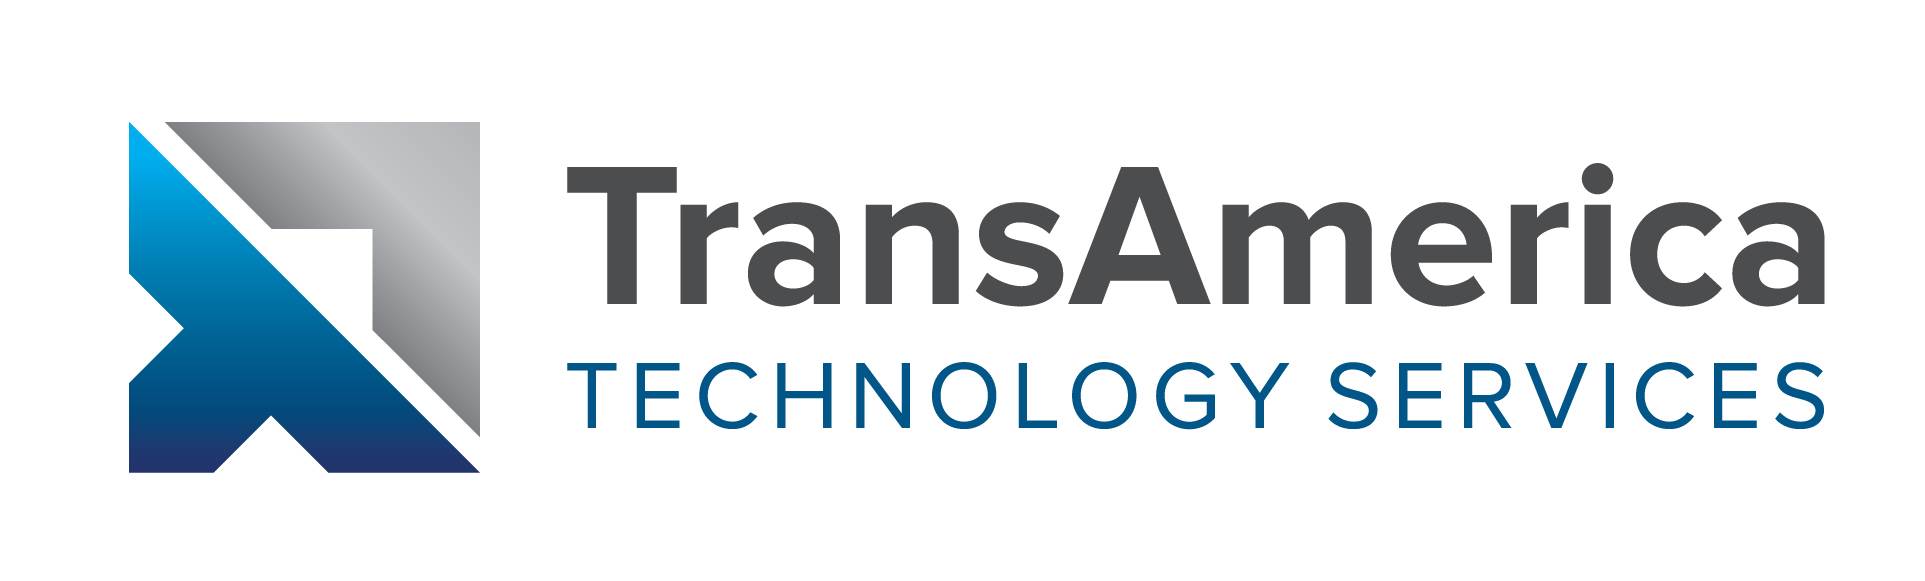 Service Desk Technician - Somerset KY role from TransAmerica Technology Services in Somerset, KY